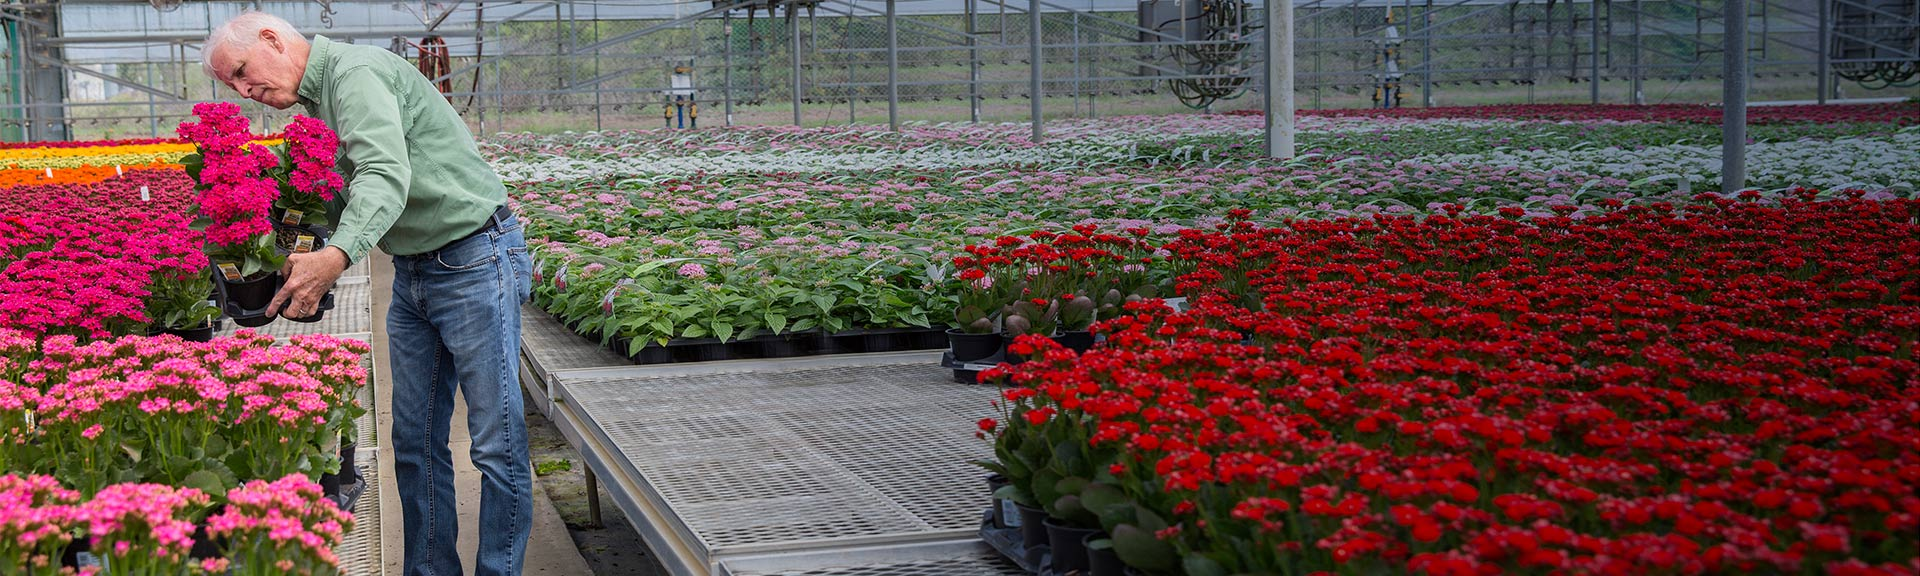 Market Category Page - Indoor Greenhouses